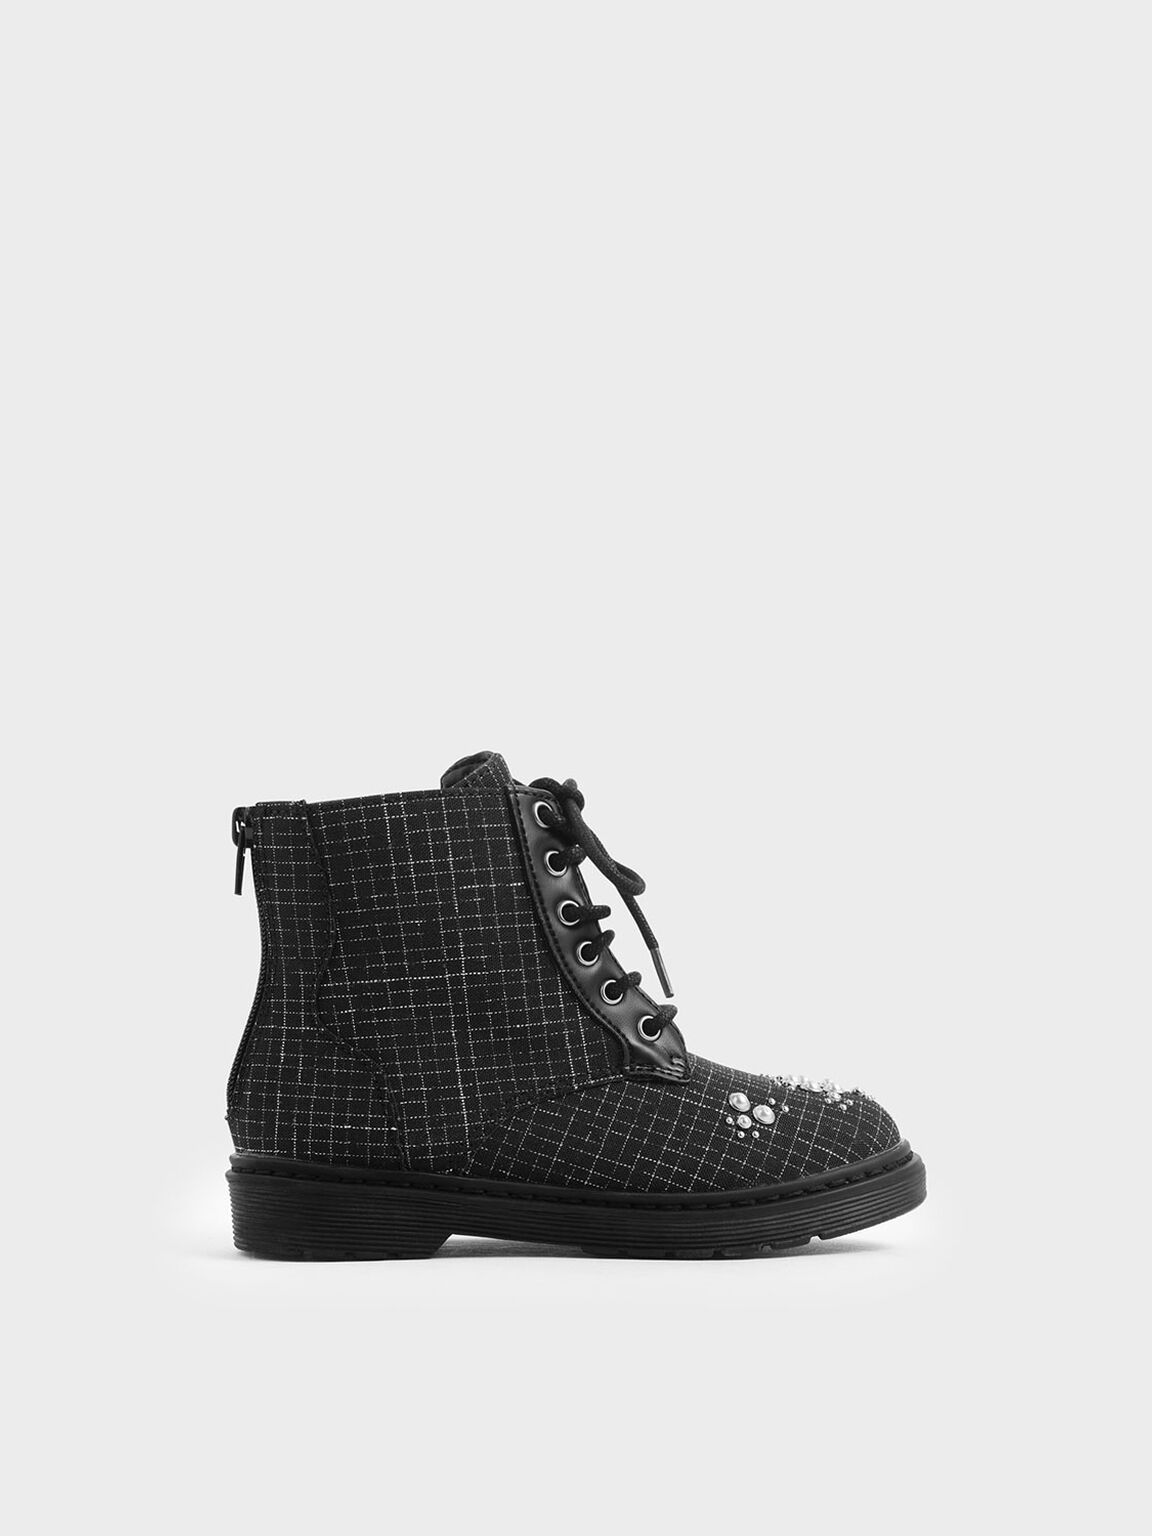 Girls' Windowpane Print Embellished Lace-up Boots, Multi, hi-res